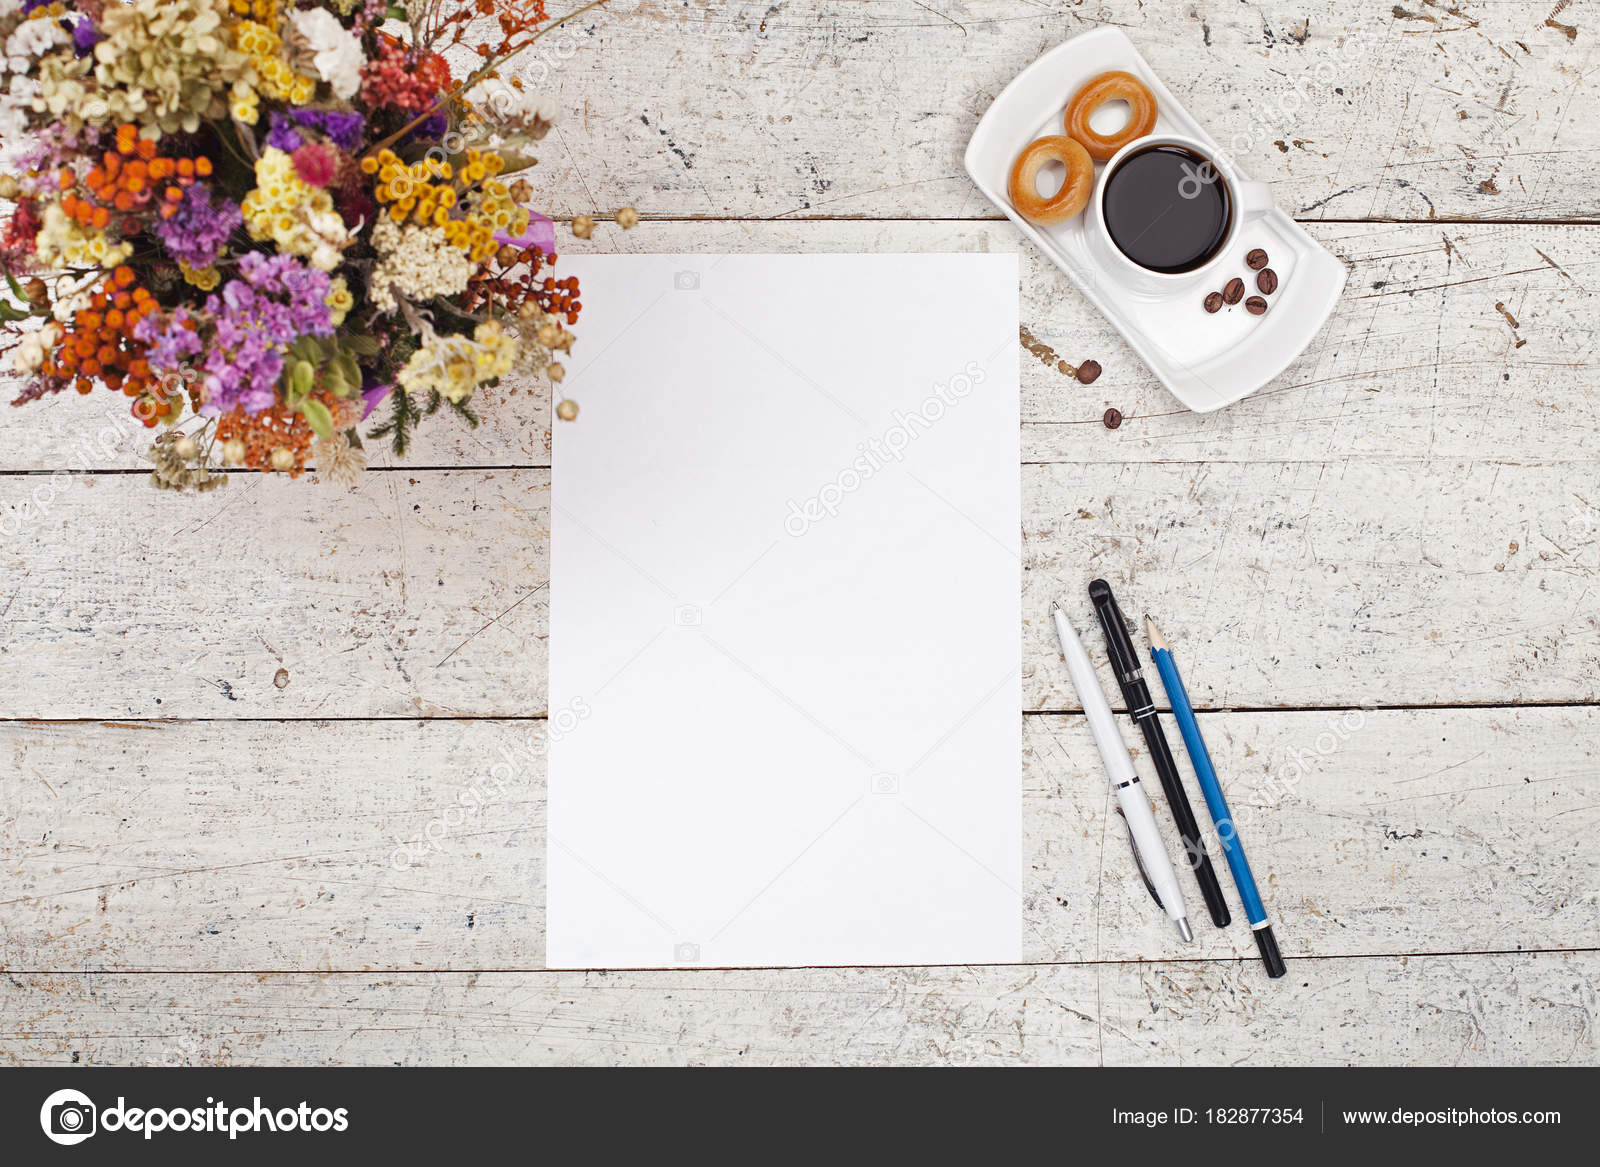 Flowers pens pencils white sheet of paper and coffee stock flowers pens pencils white sheet of paper and coffee on a light wooden backgroun photo by artofgalaxy mightylinksfo